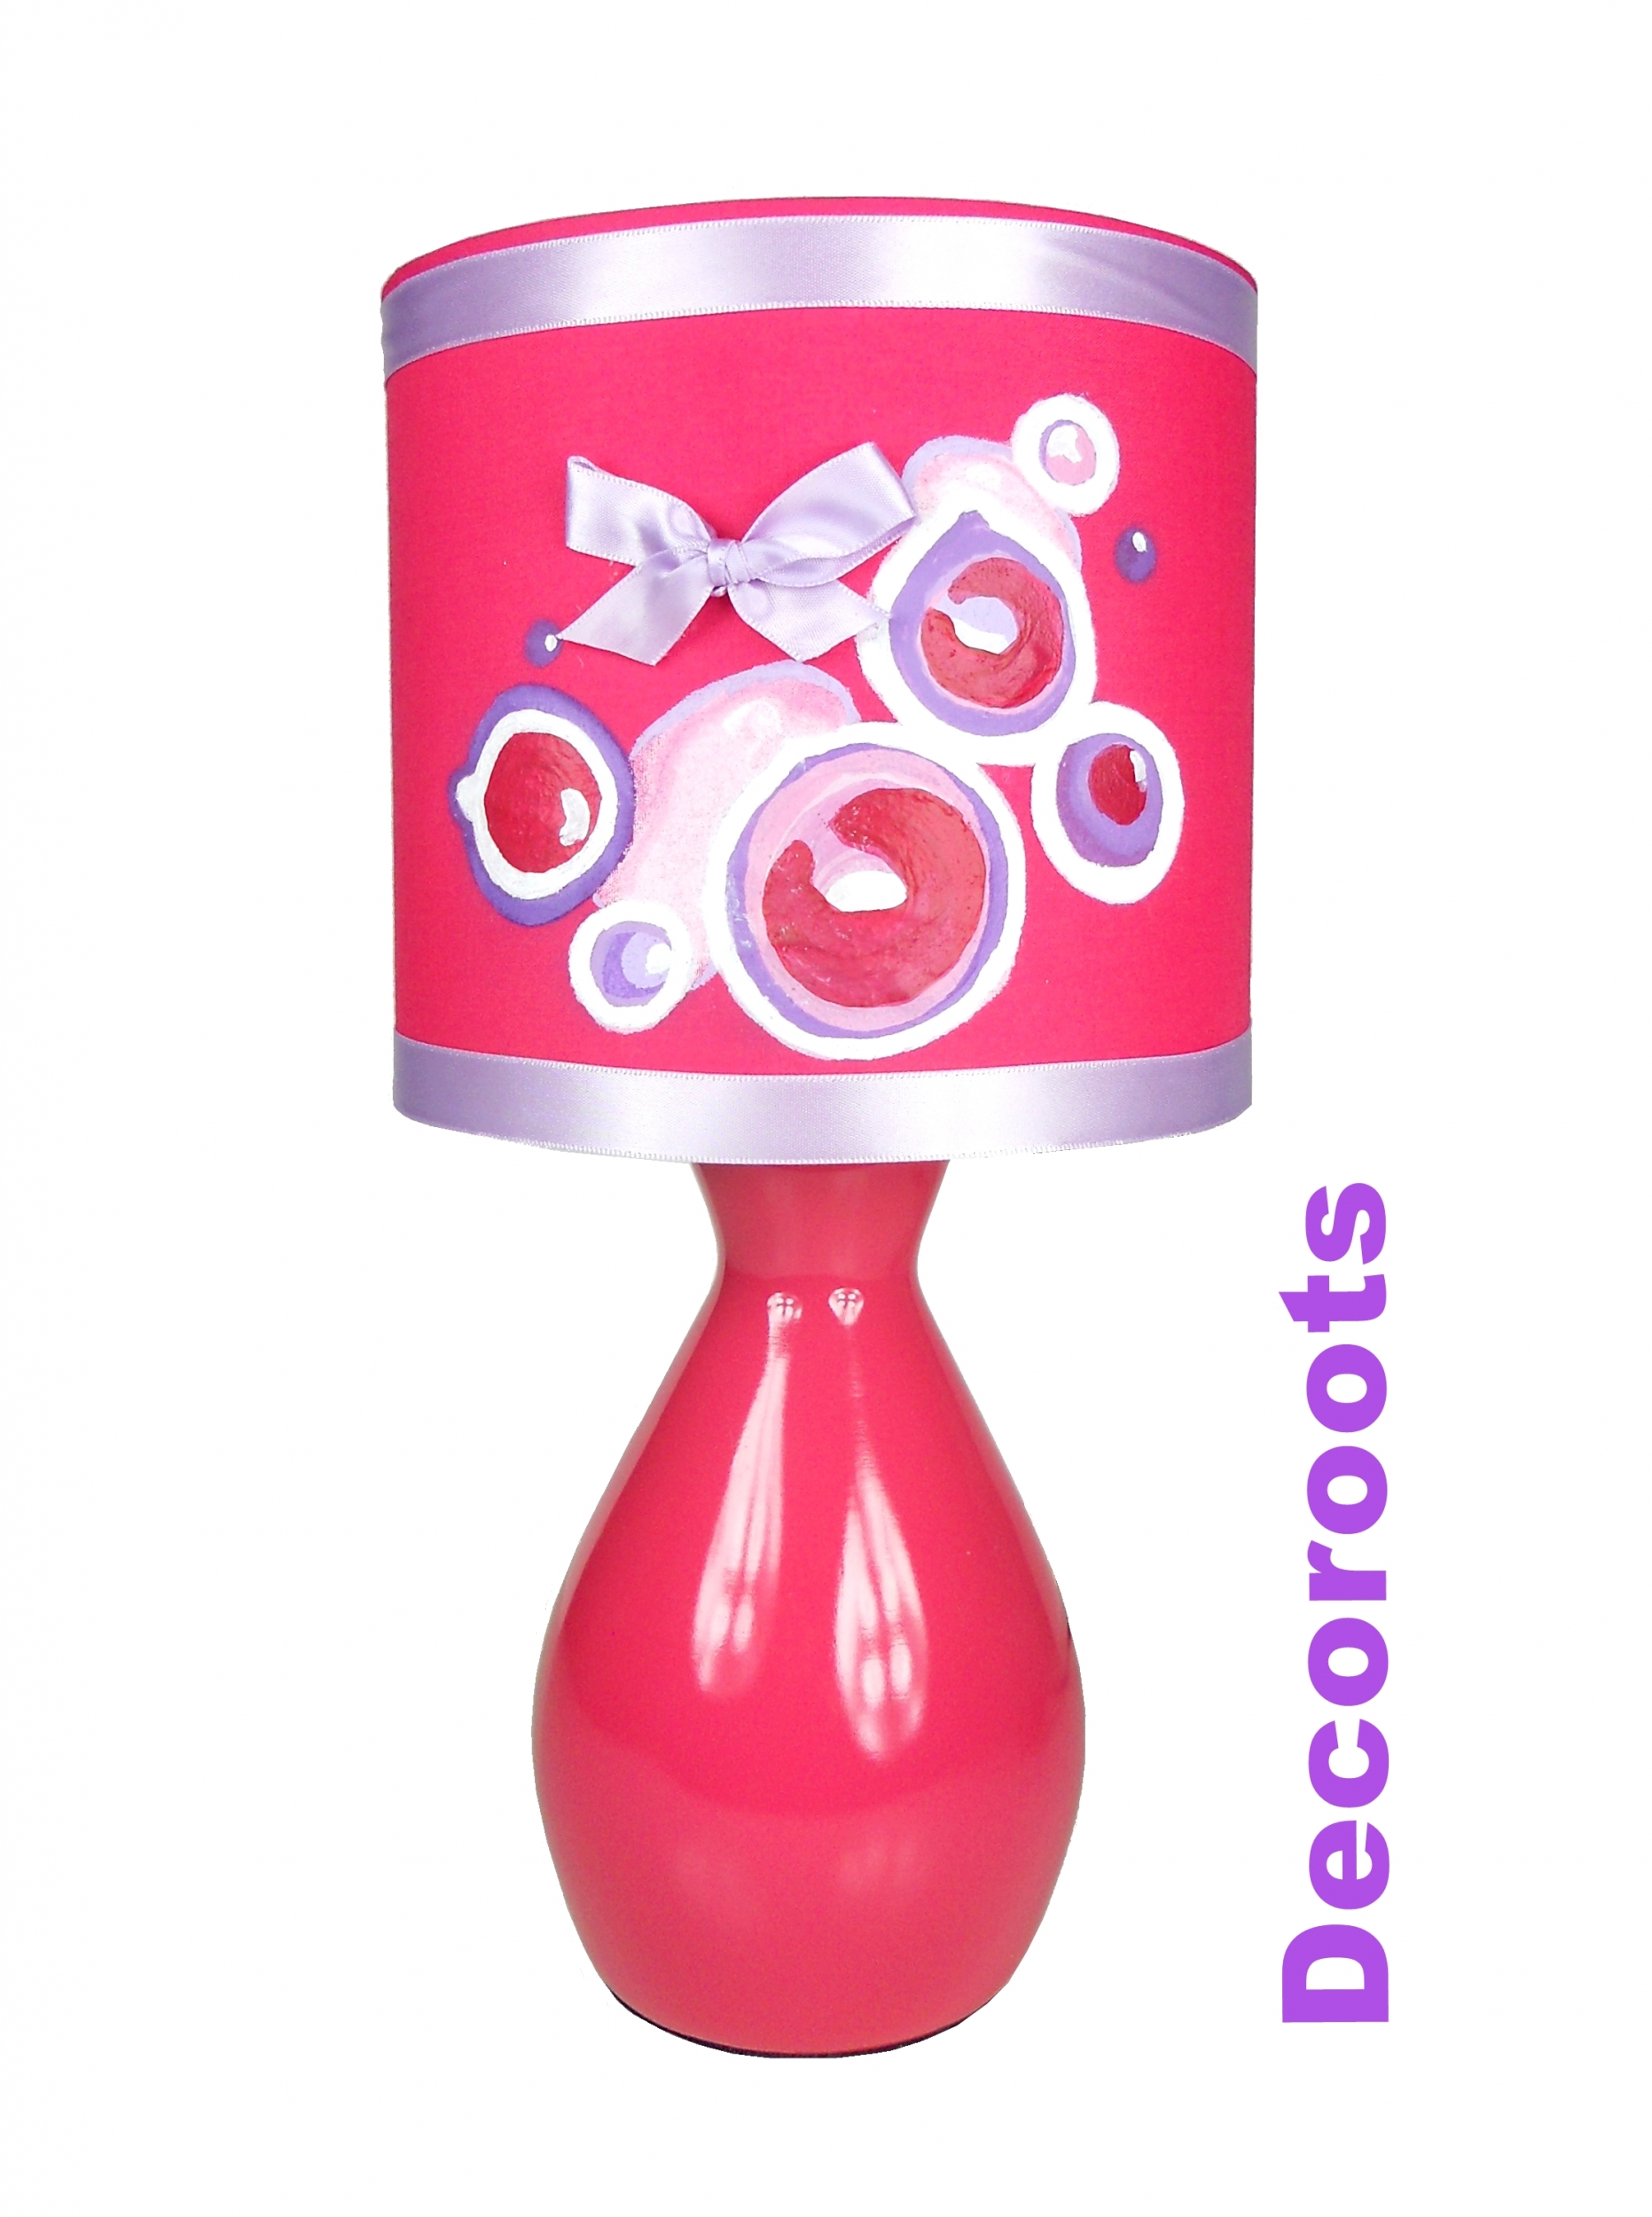 Lampe b b enfant fille collection bubble rose d coration chambre enfant b - Lampe de chevet violet ...